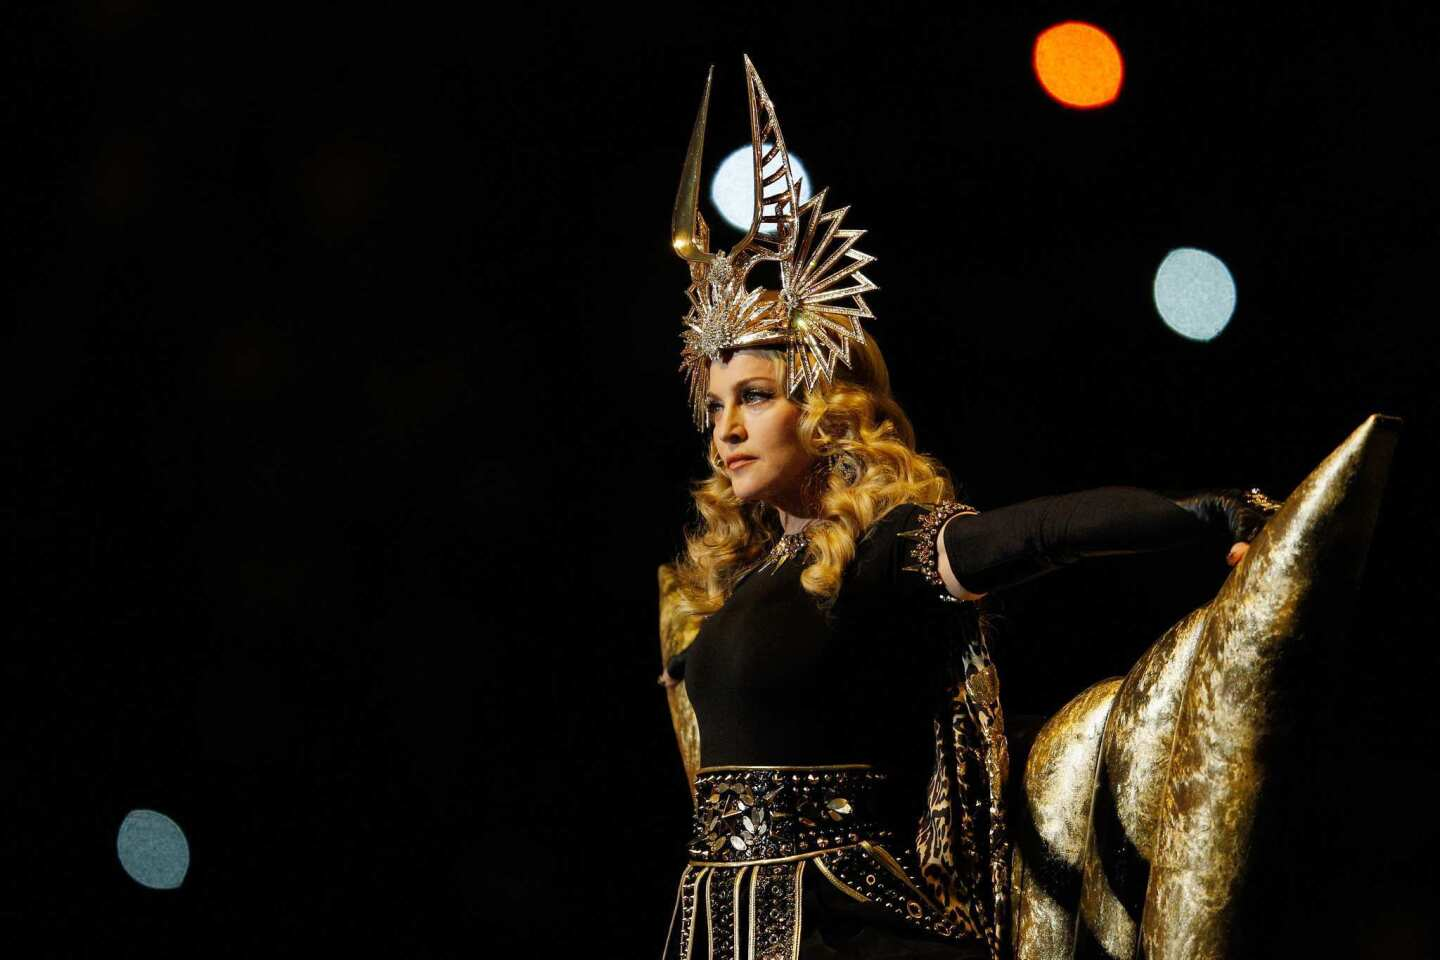 Madonna performs during the Super Bowl XLVI halftime show in Indianapolis.